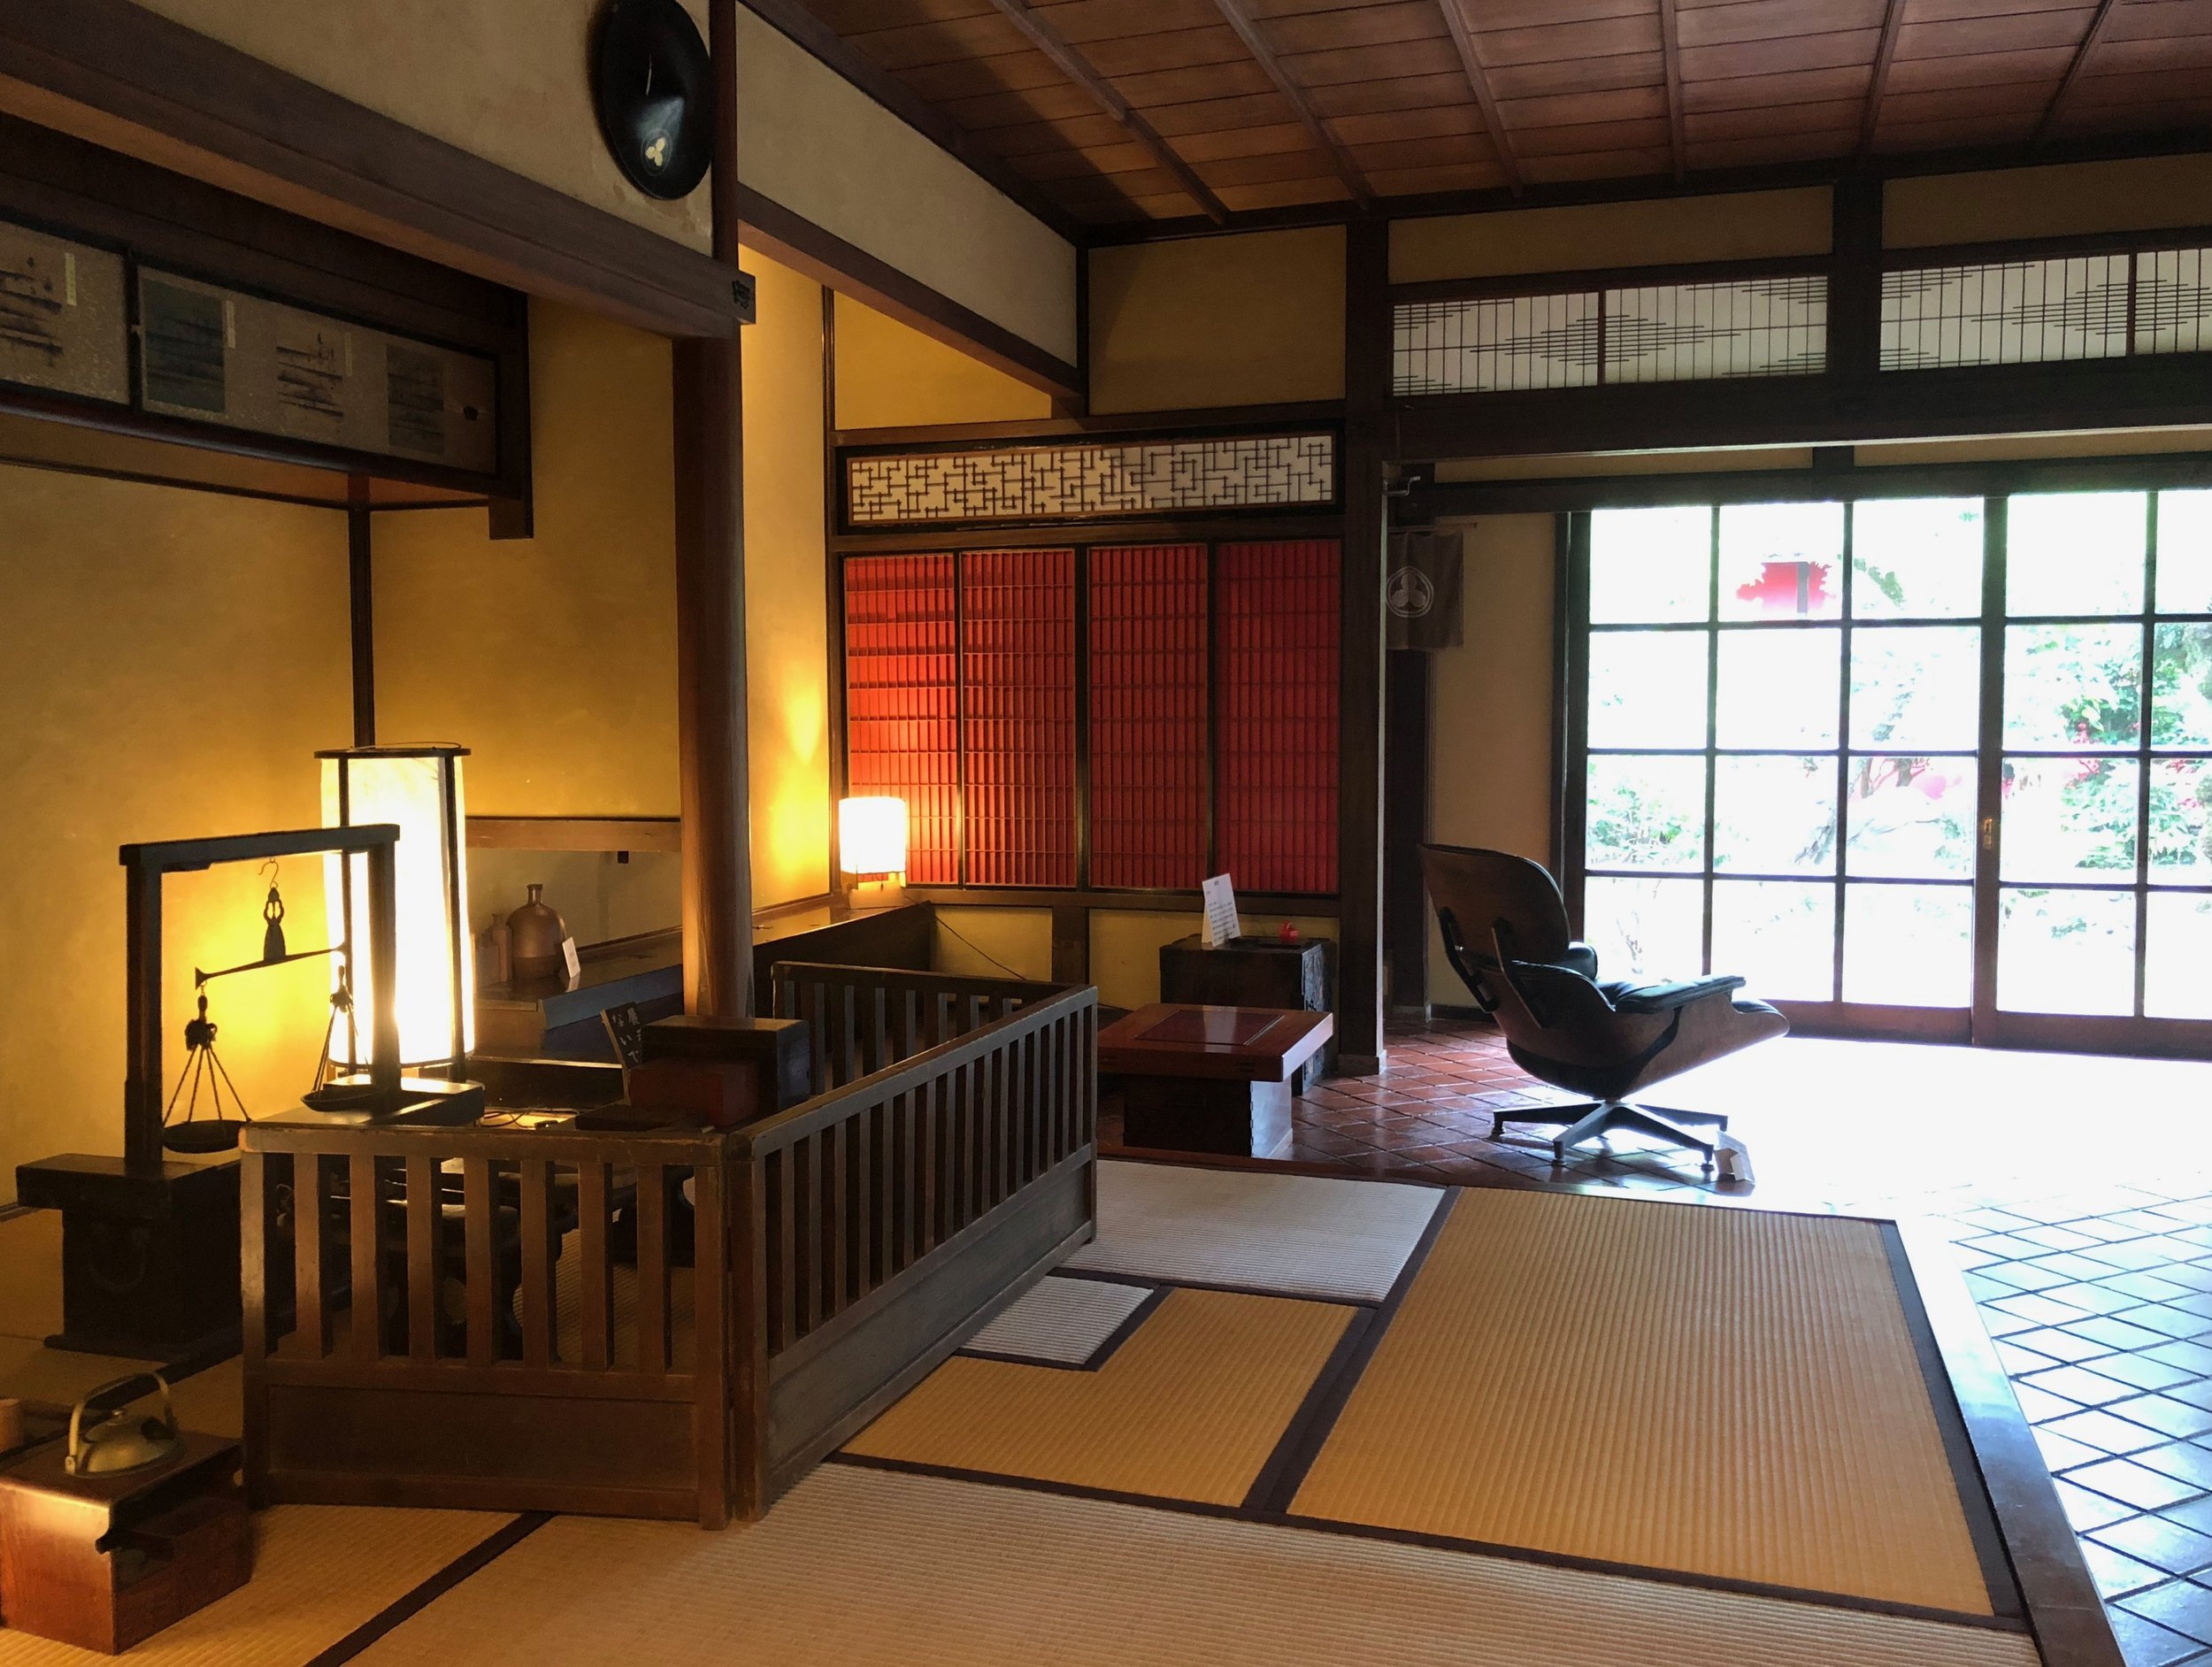 Several rooms in the Kamebishiya brewery have been preserved to showcase the 18th century lifestyle of an affluent soy sauce brewer like the Okada family..